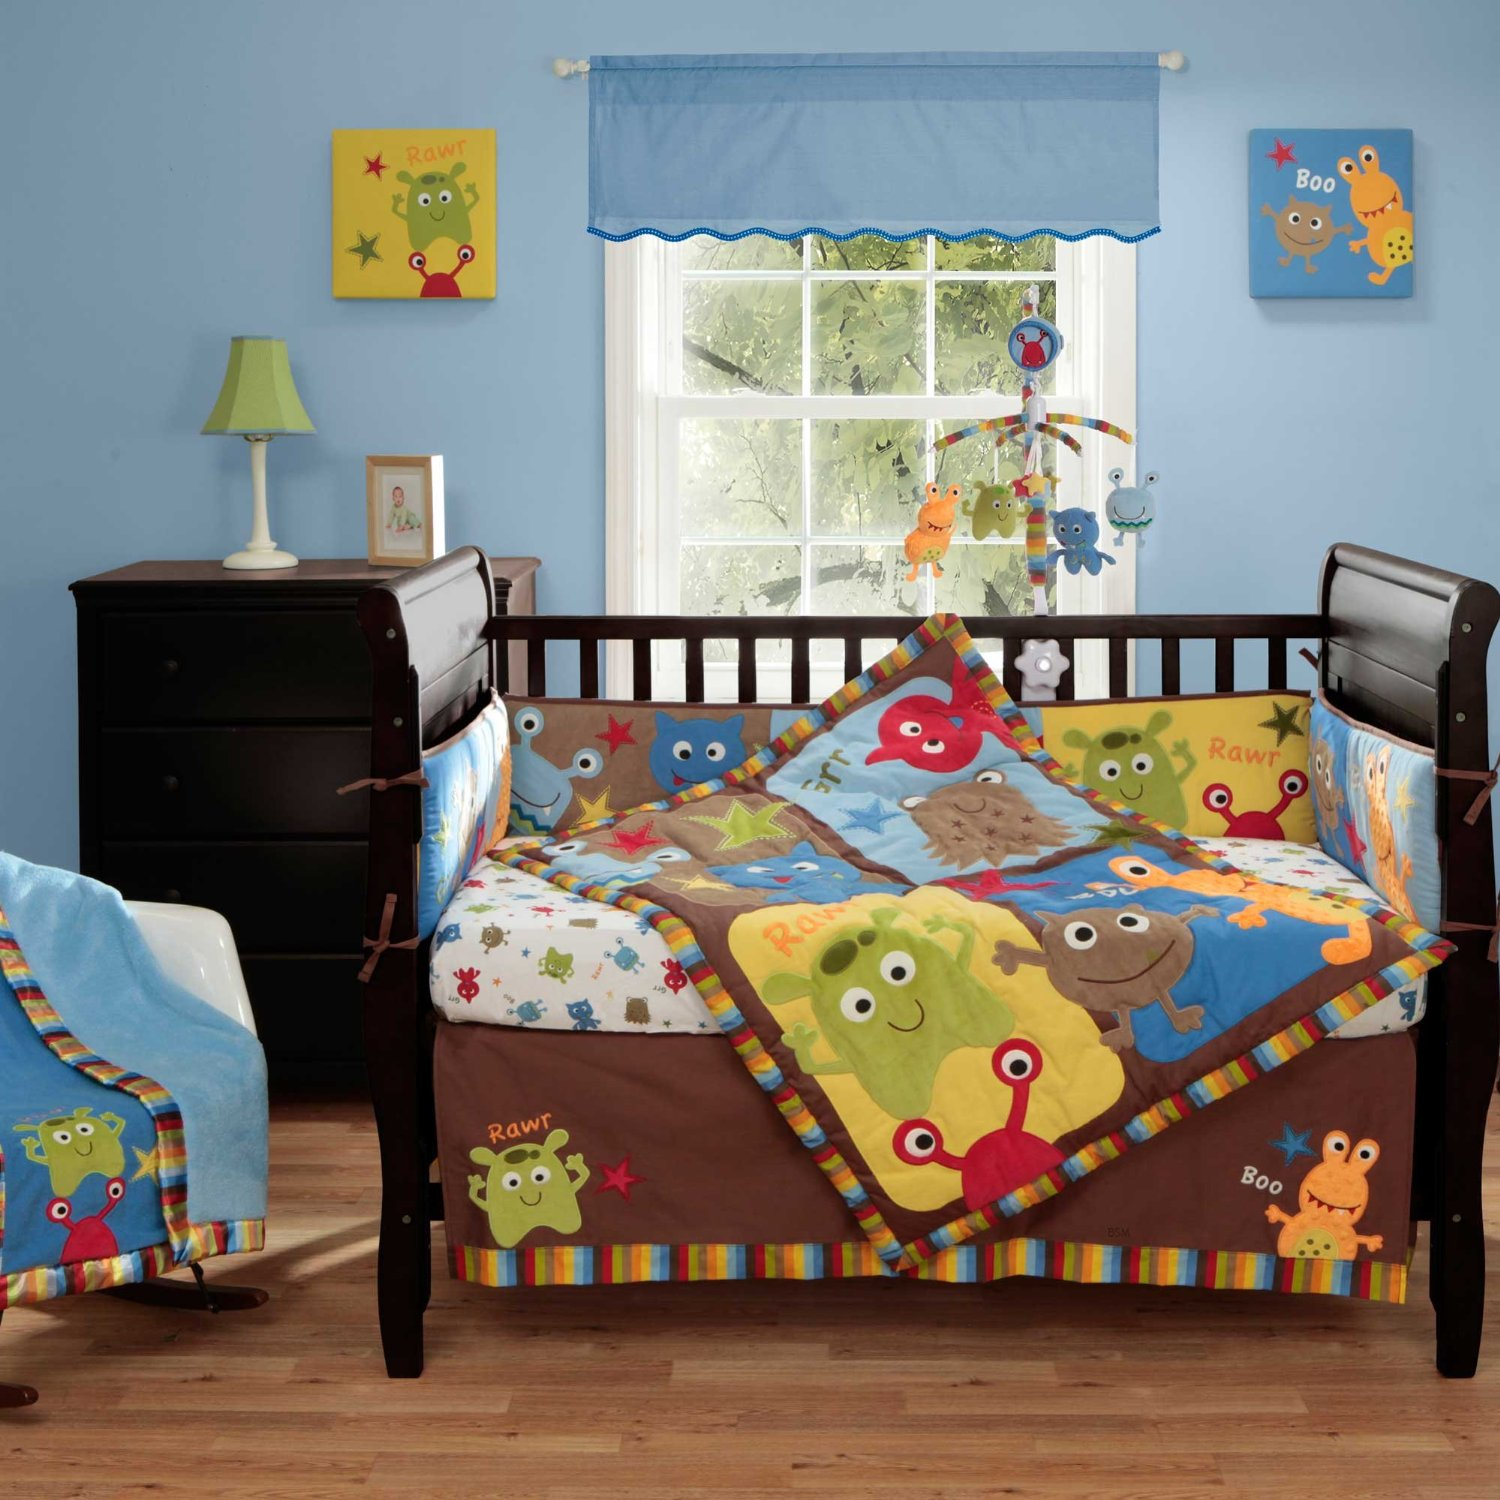 Bananafish Baby Monster Baby Bedding and Decor - Baby